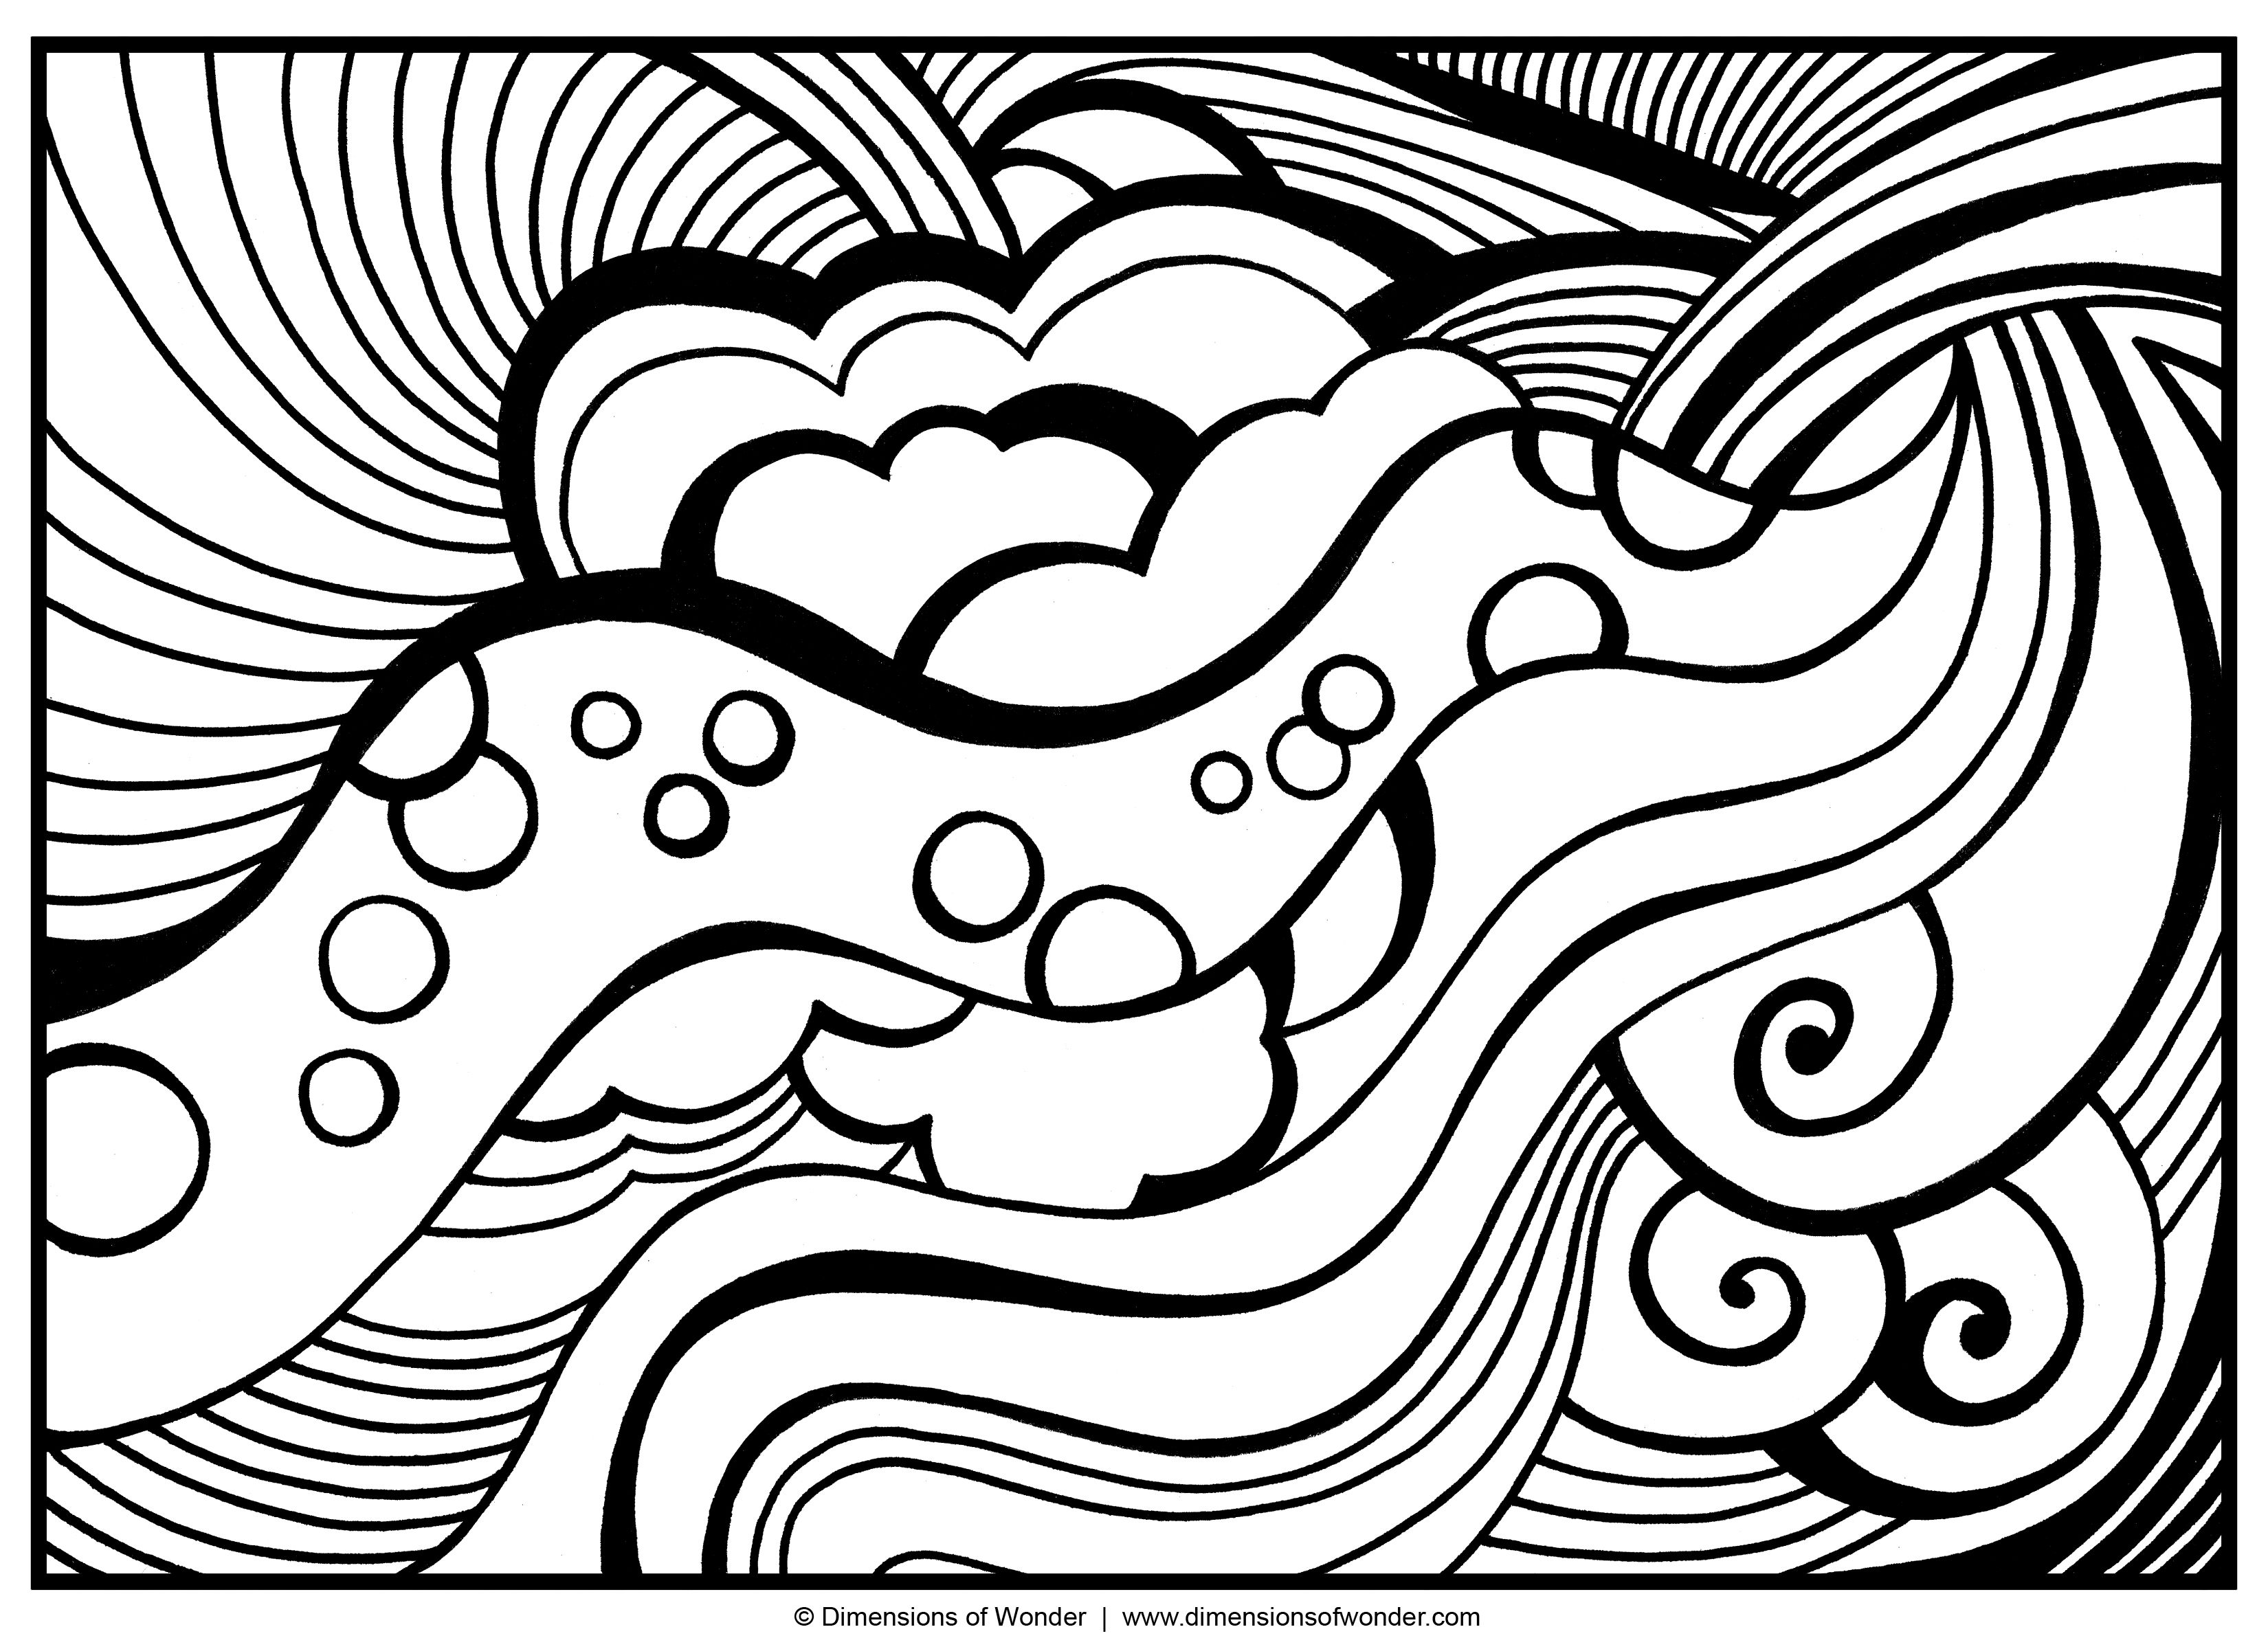 3300x2400 Coloring Pages For Adults Abstract Fun Printable Within